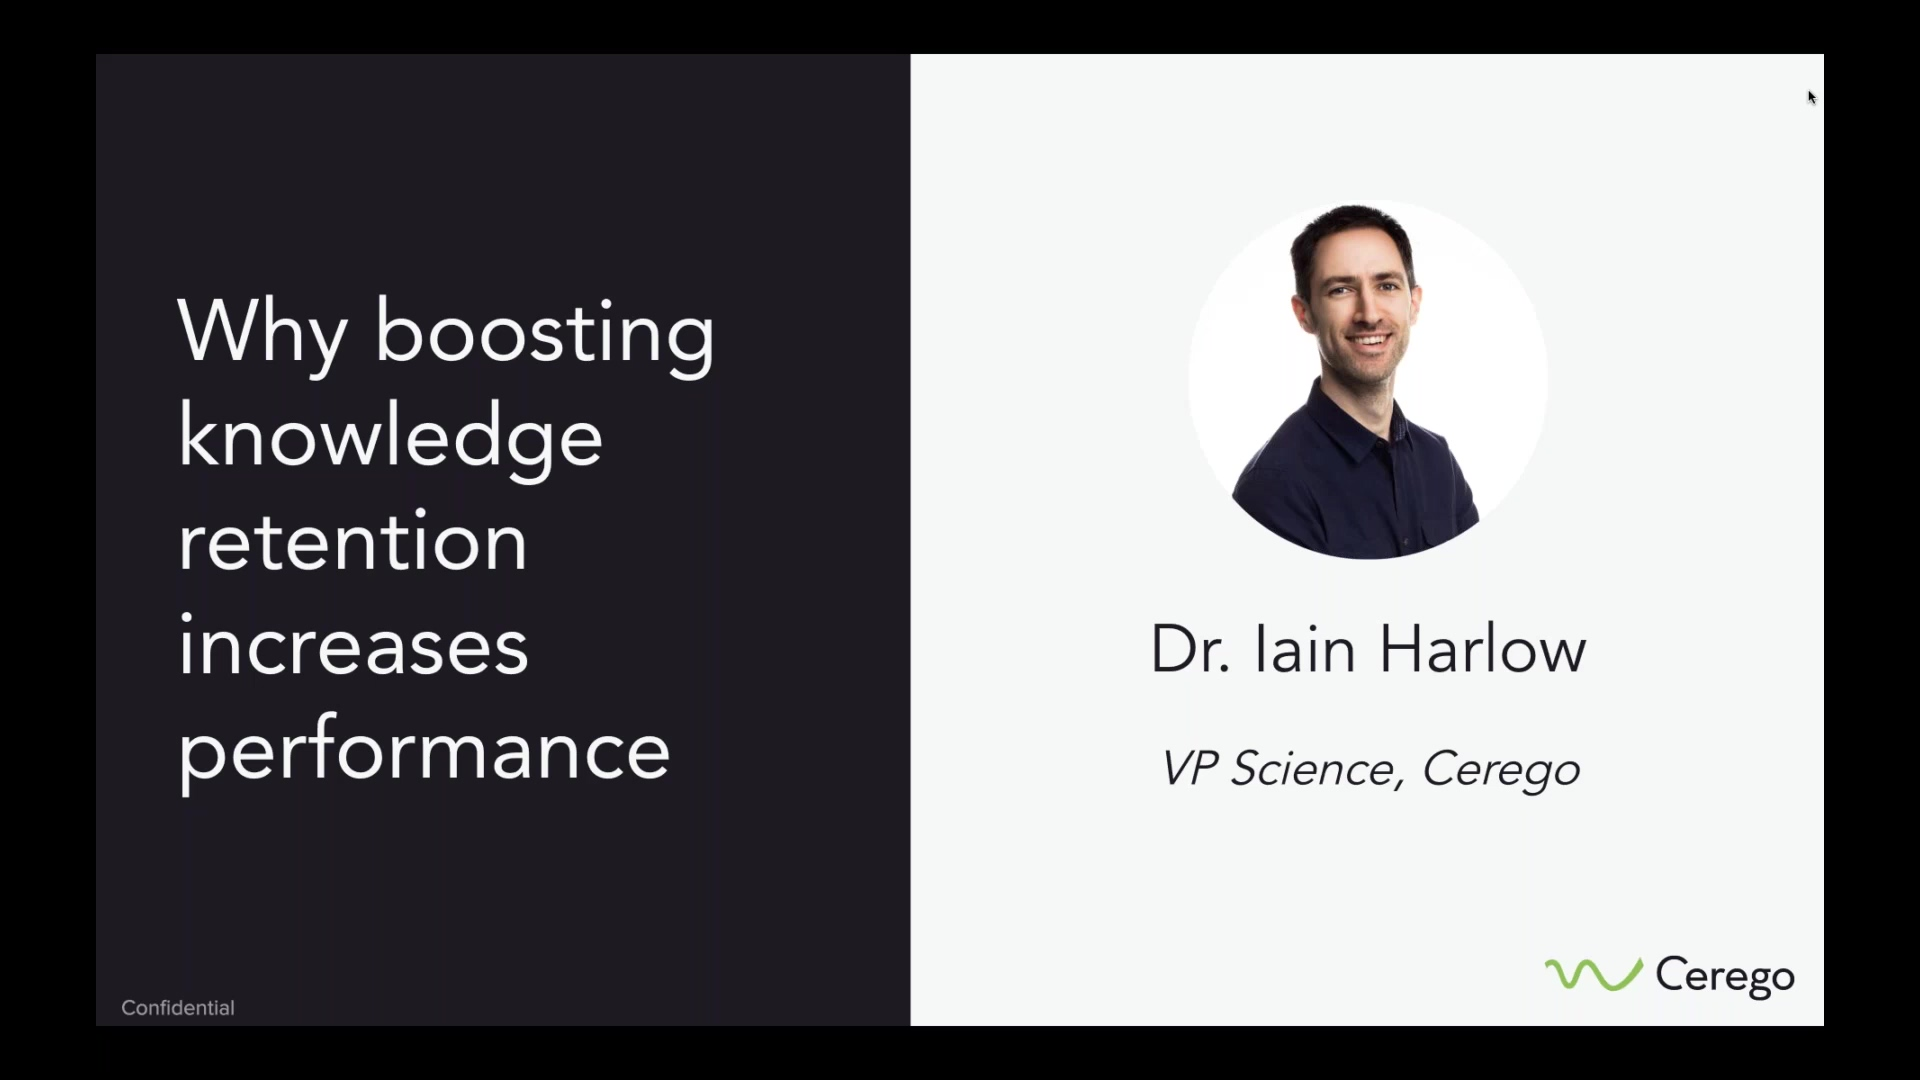 Why boosting knowledge retention increases performance - 2019.07